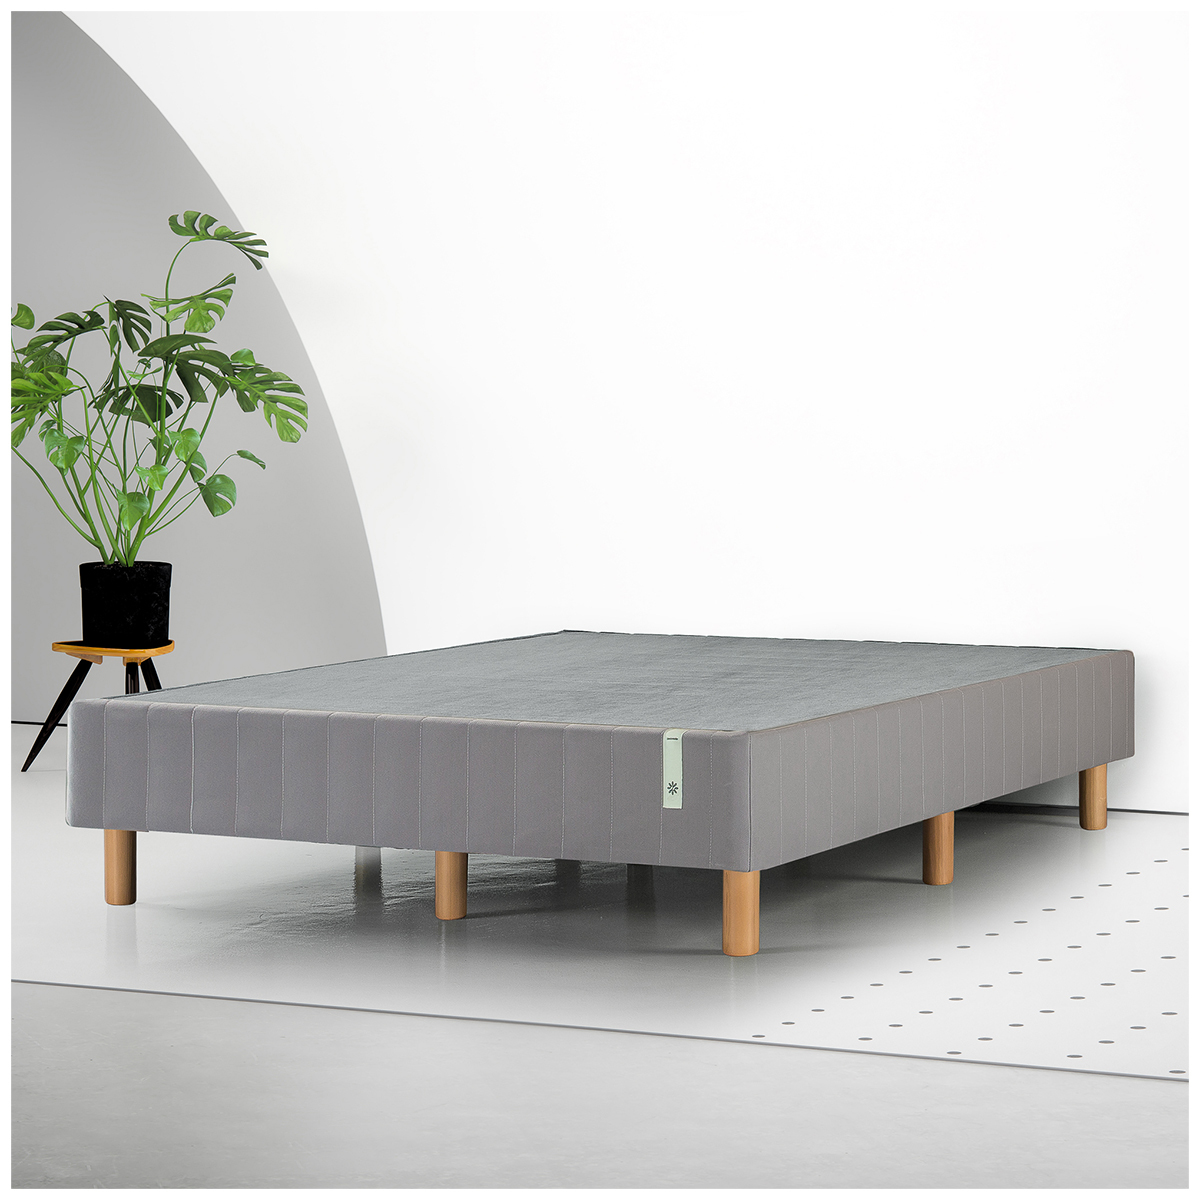 Blackstone Standing Smart Box Spring Double Bed Base Grey image 5